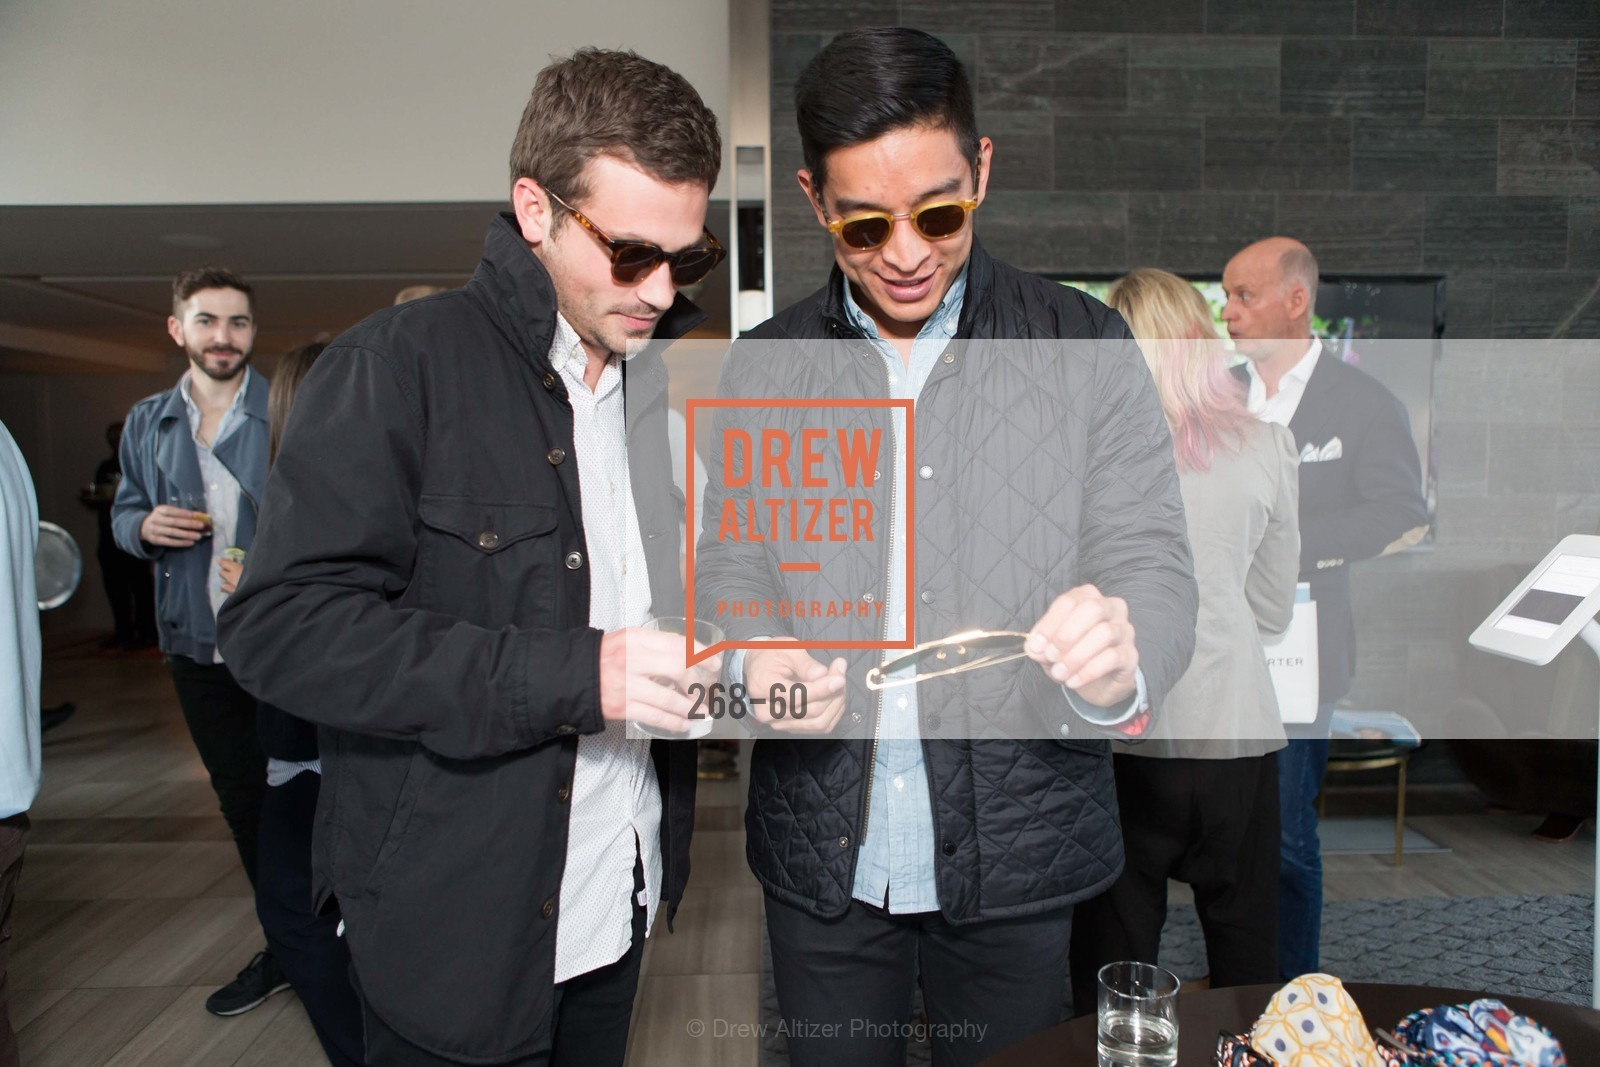 Jordan Bewtner, Alex Kim, MR PORTER Celebrate The San Francisco Issue of The Journal, The Battery Rooftop - The Battery SF, April 23rd, 2015,Drew Altizer, Drew Altizer Photography, full-service agency, private events, San Francisco photographer, photographer california